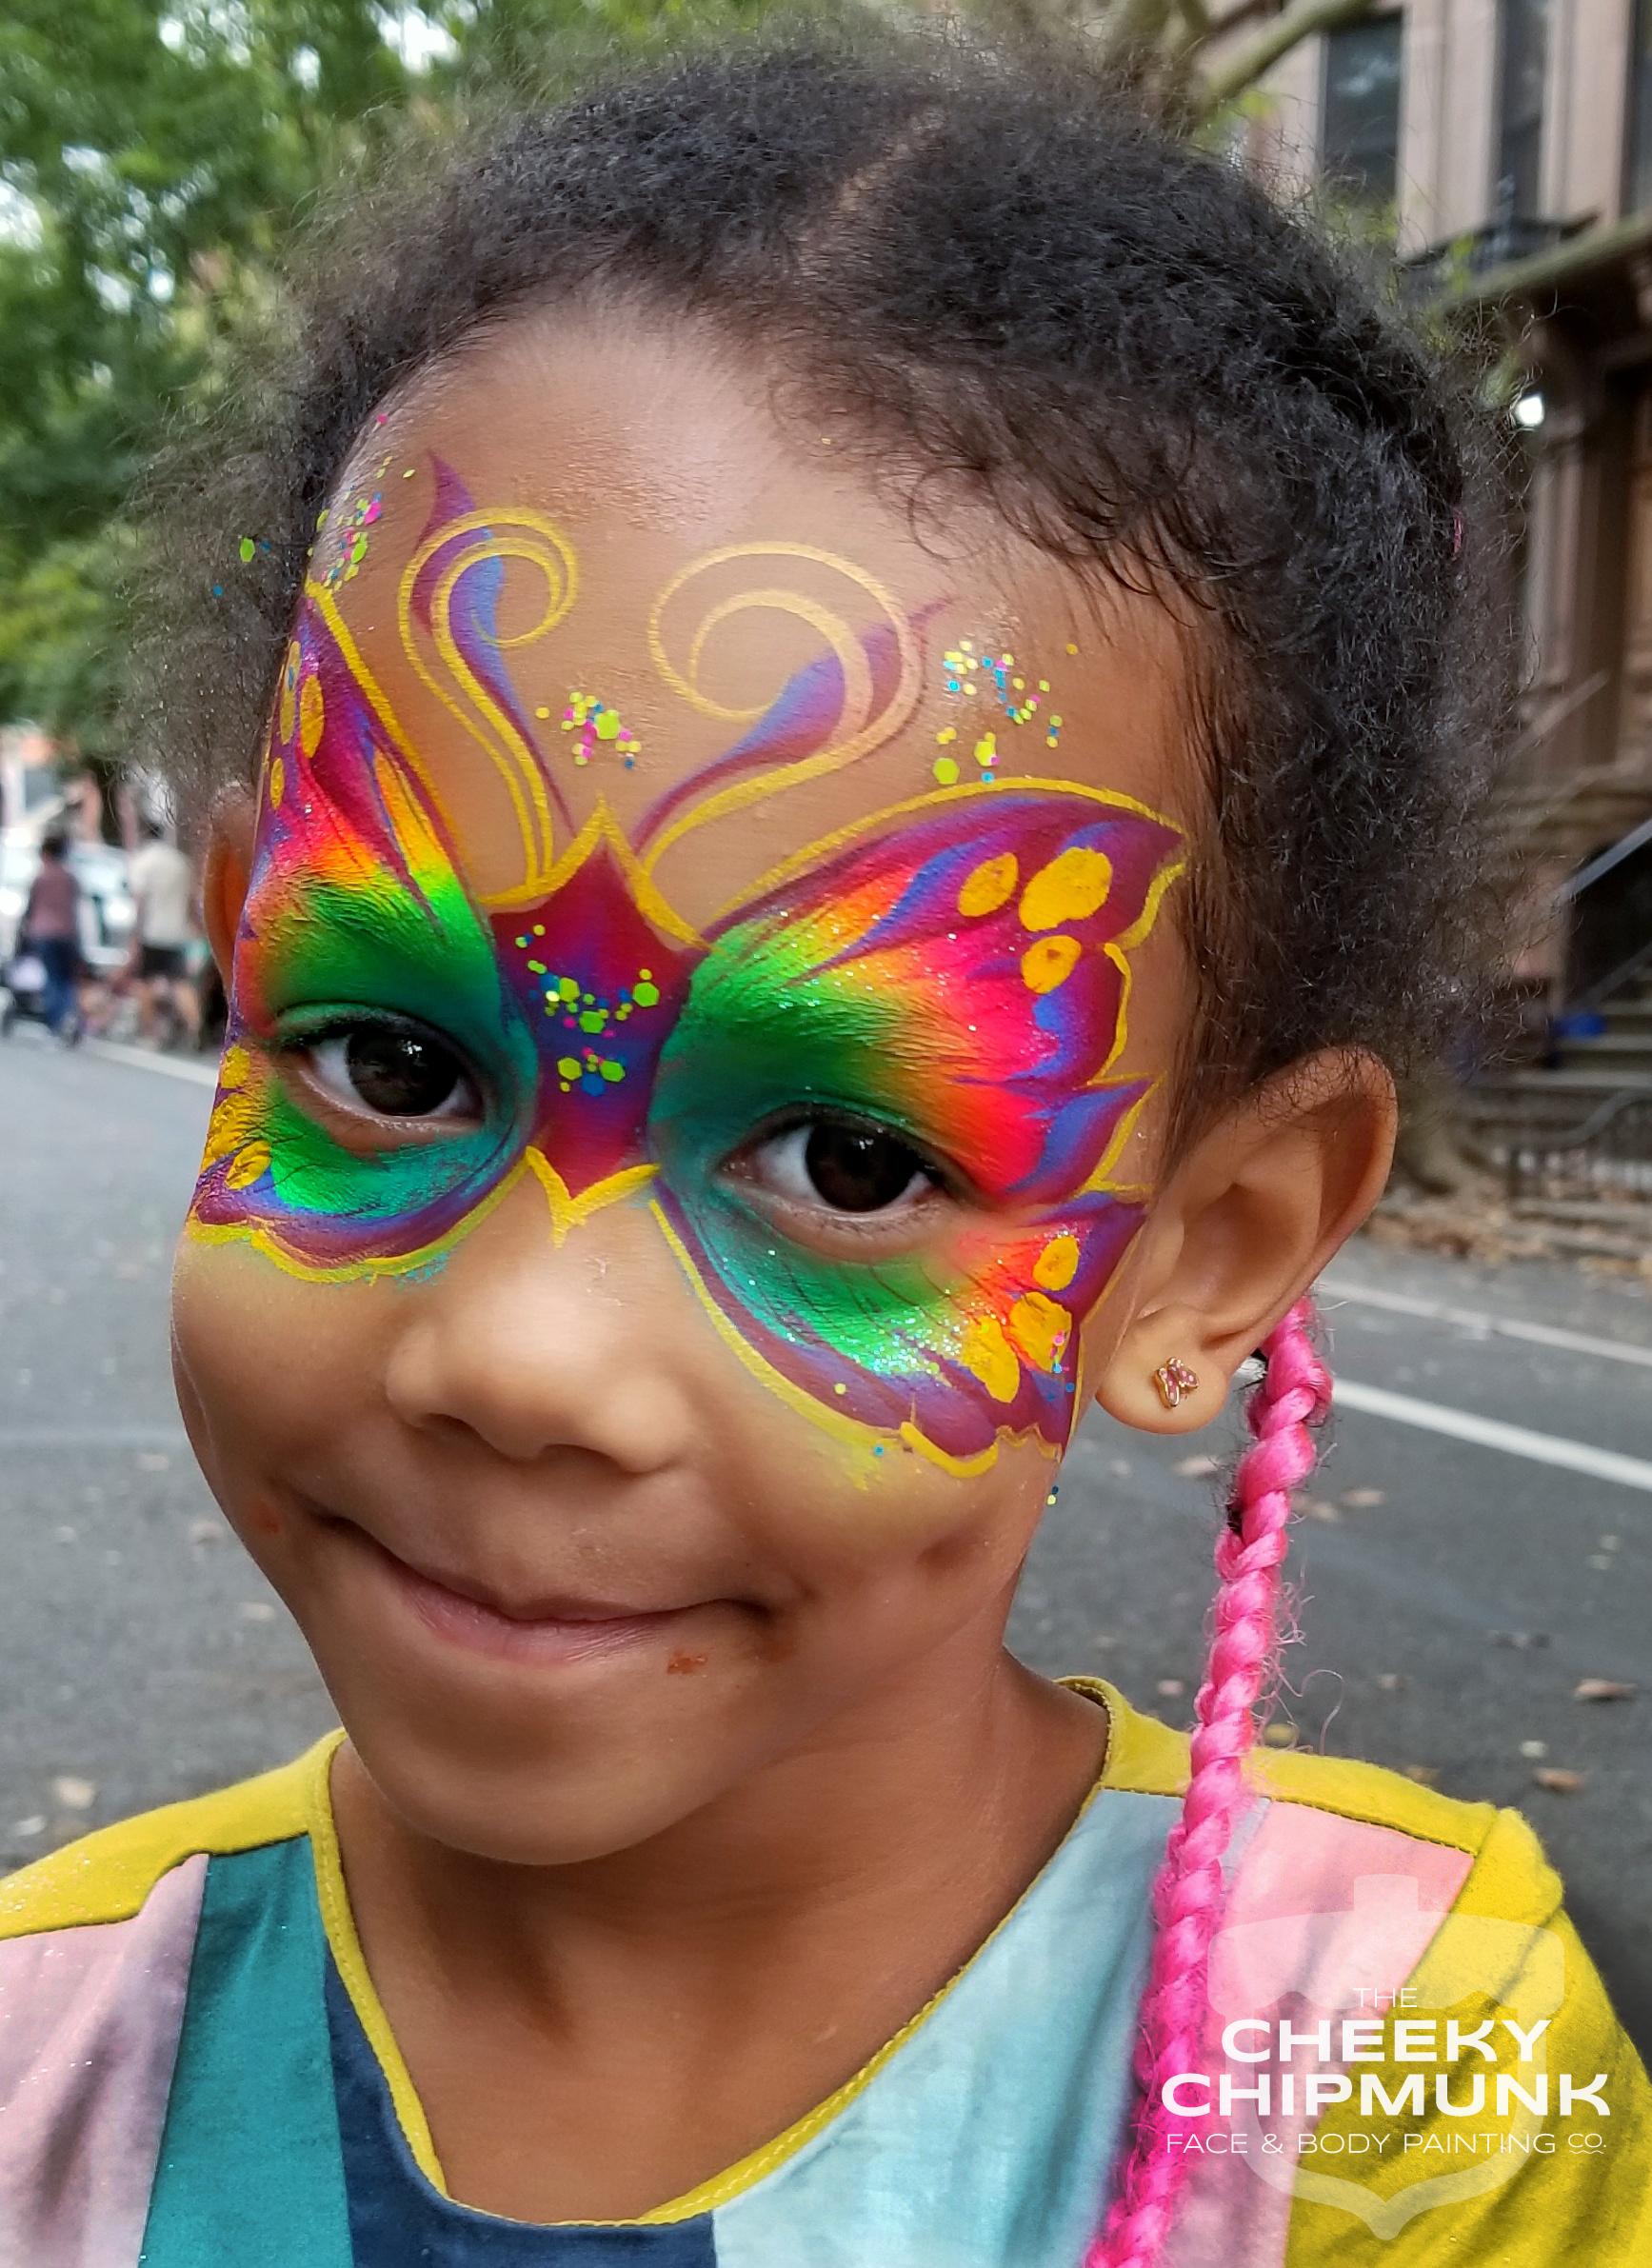 lenore-koppelman-the-cheeky-chipmunk-butterfly-brooklyn-birthday-party-little-girl-rainbow-smiling-dimples-brownstone-houses-park-slope-happy-birthday-maddy.jpeg